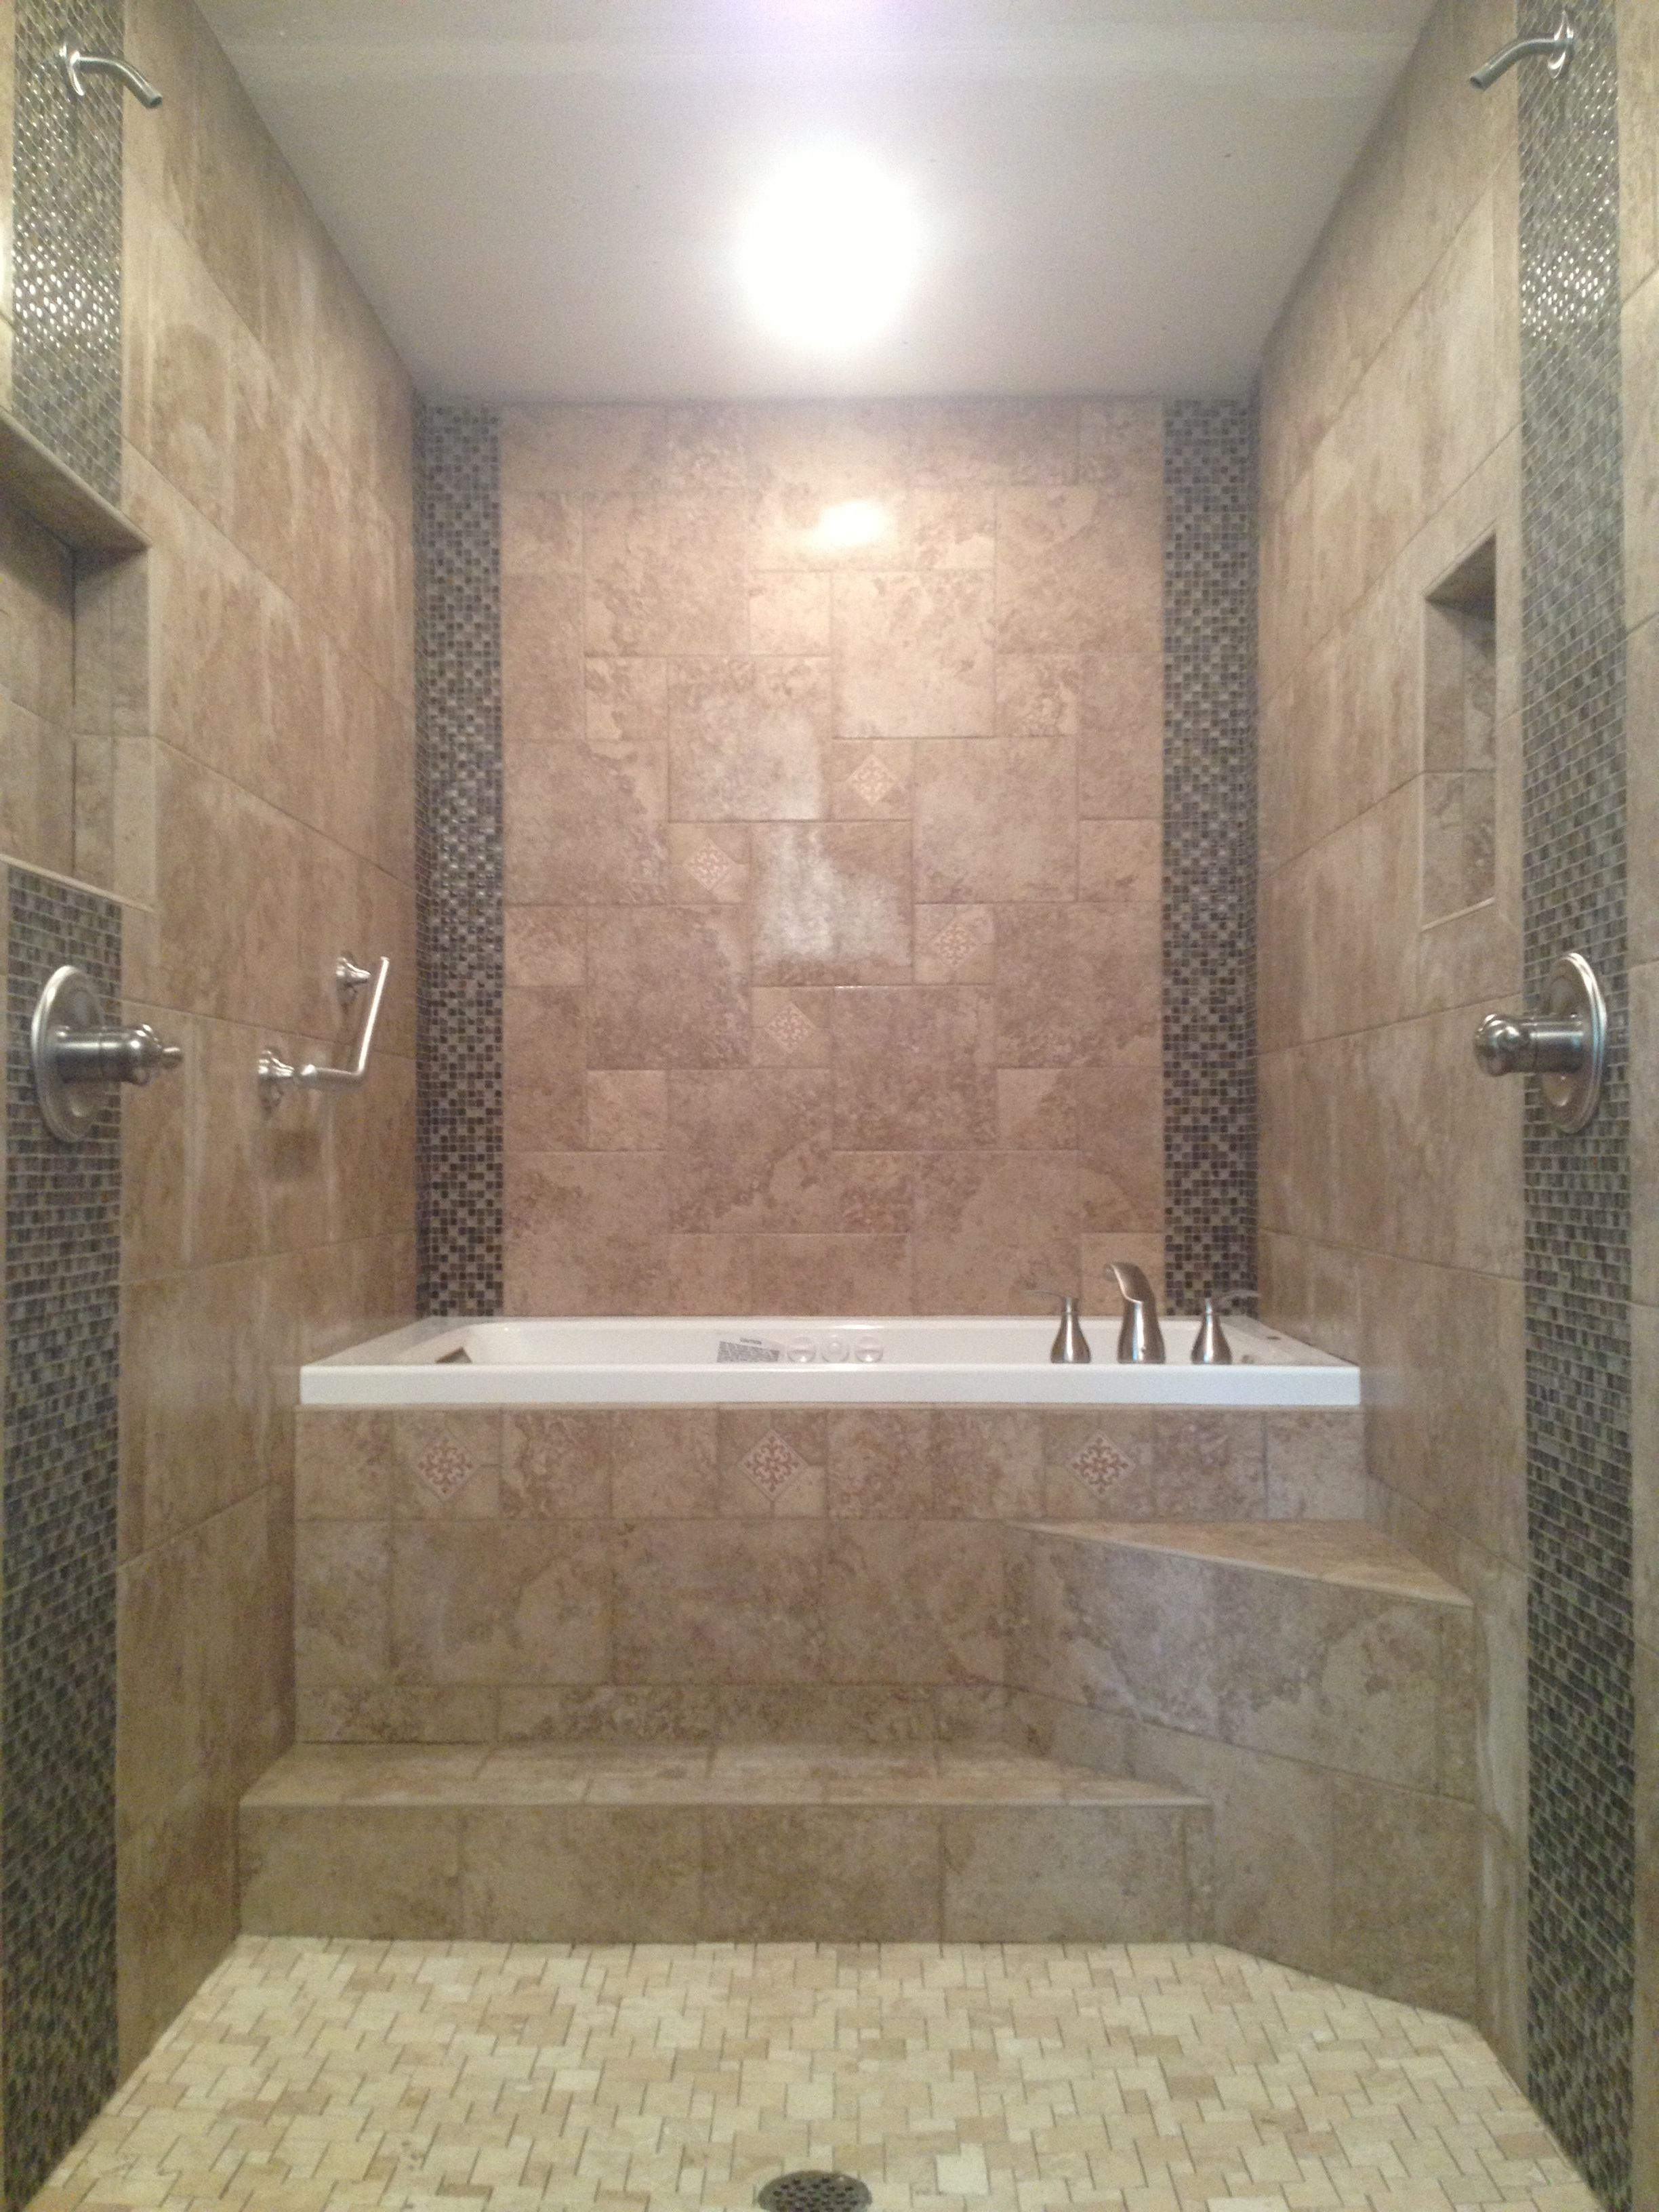 Master Bathroom renovation Walk through dual head shower to a raised drop in Jacuzzi whirlpool tub All porcelain tile with glass and natural stone mosaic